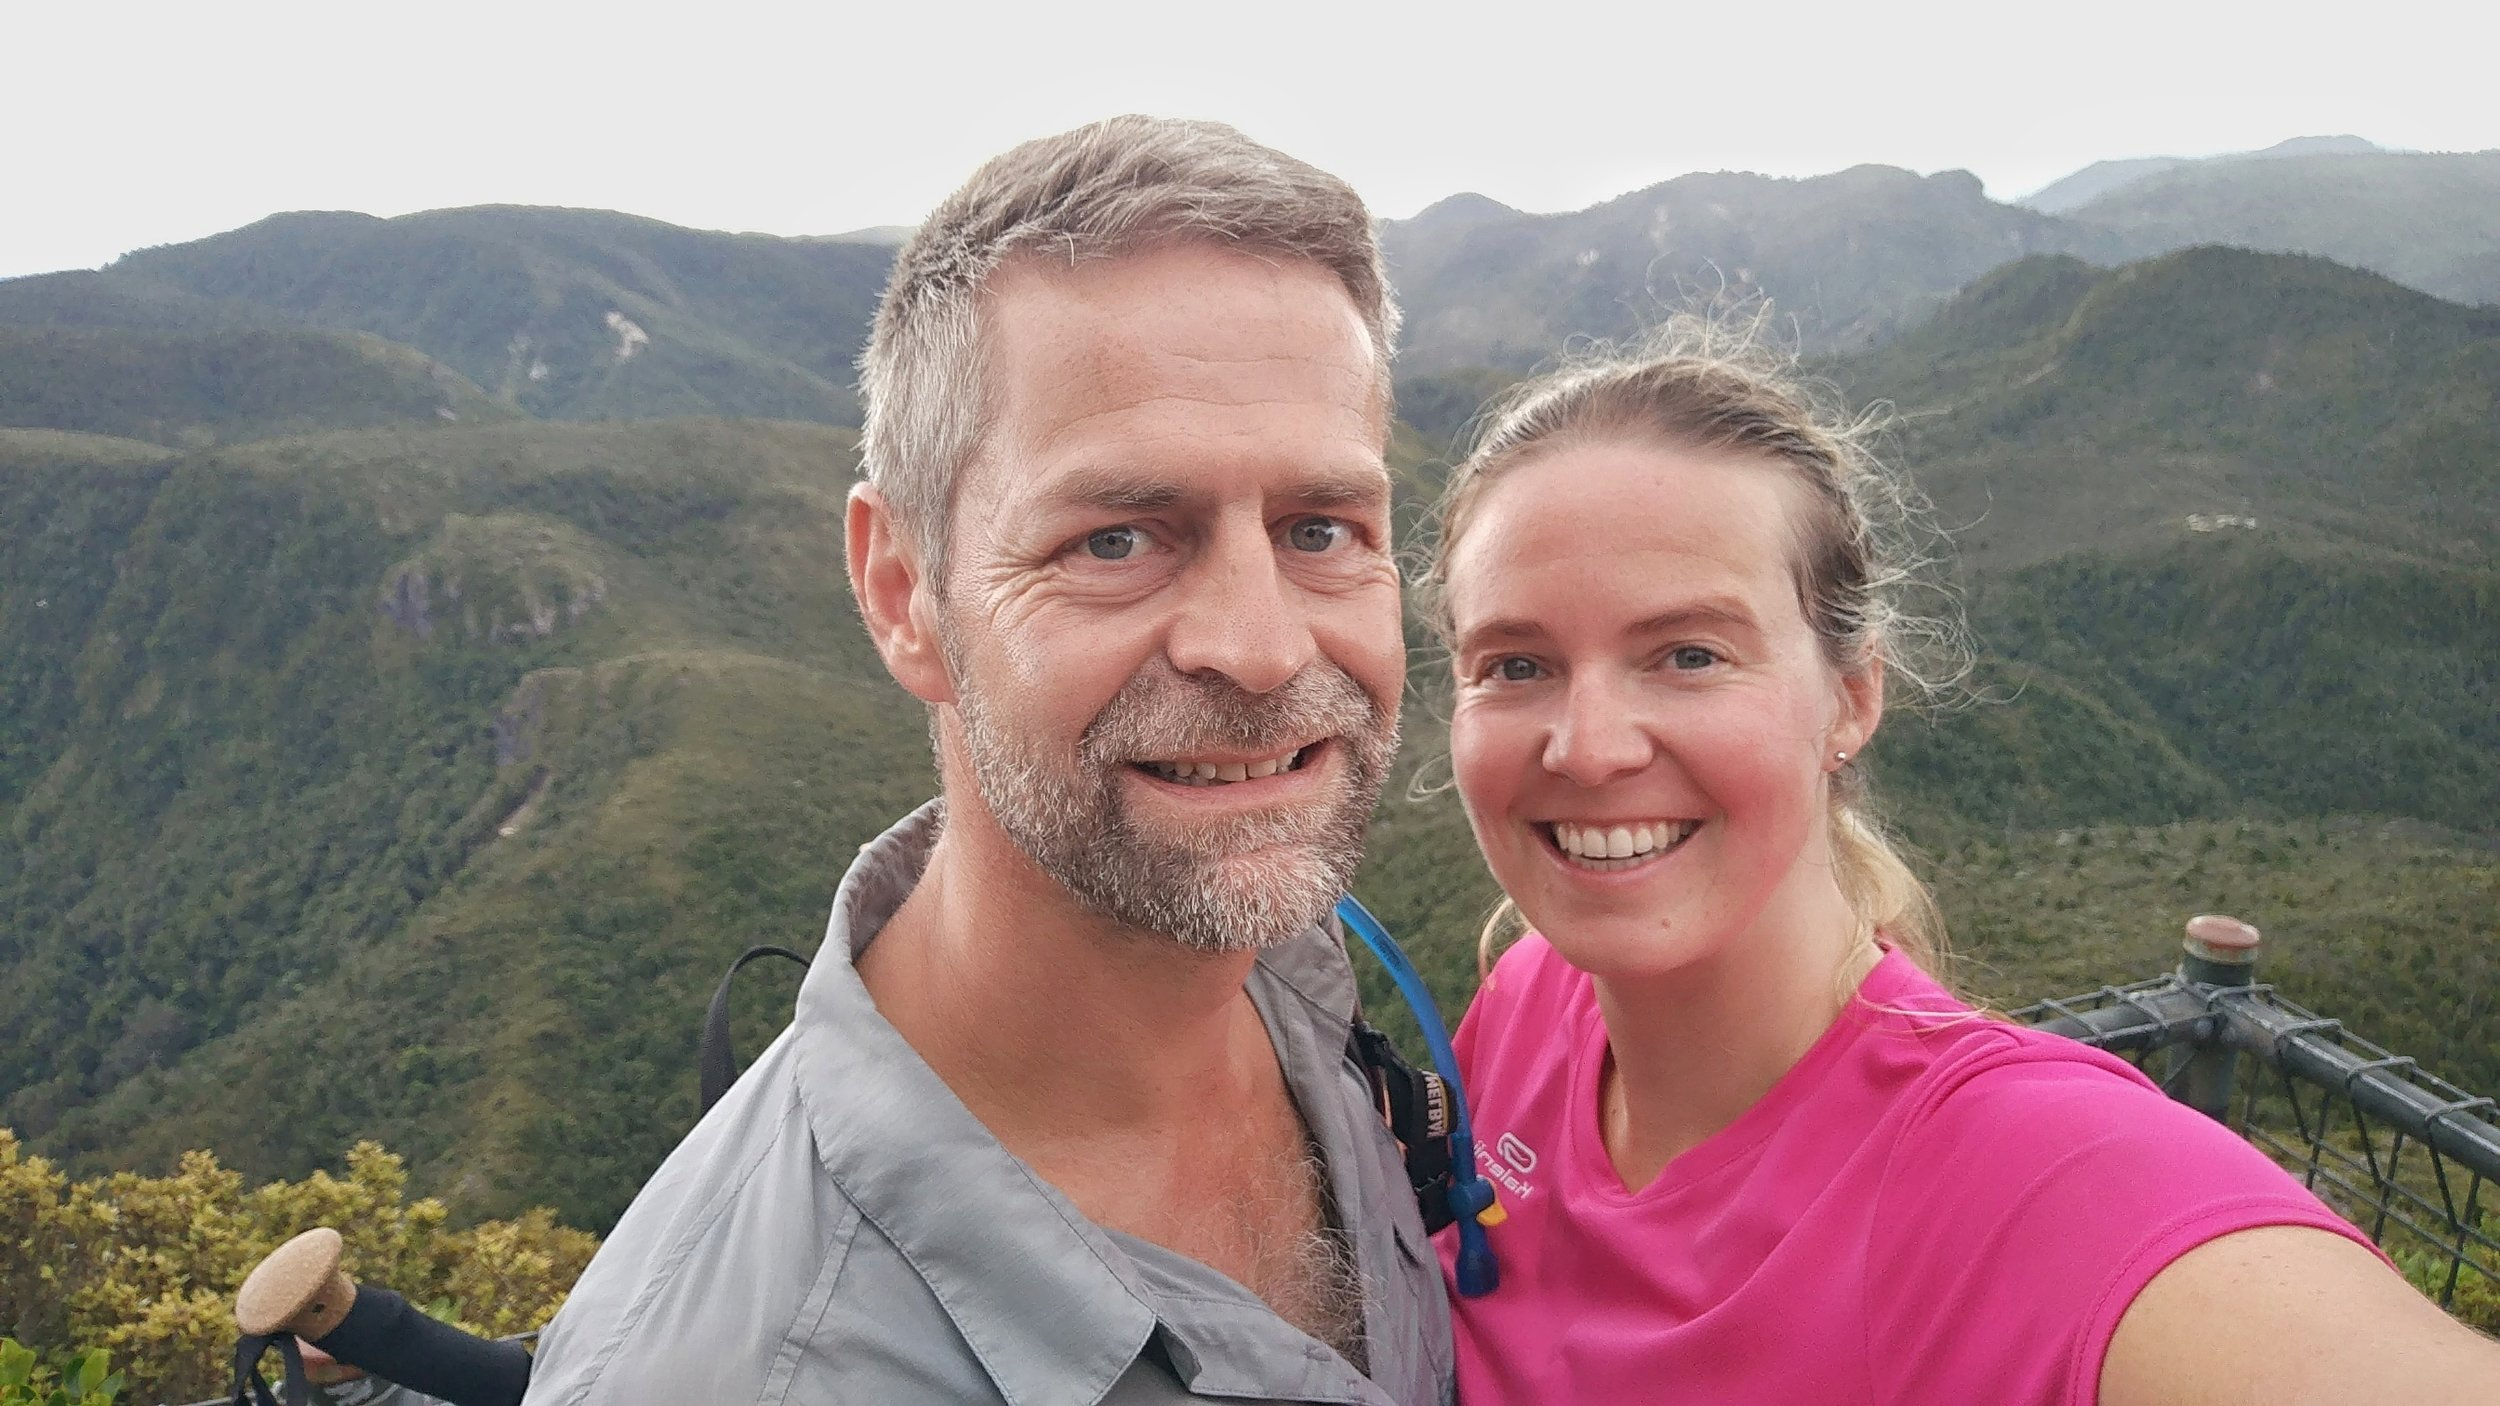 20180101_new_zealand_coromandel_kauaeranga_valley_pinnacles_walk_top_selfie_2.jpeg